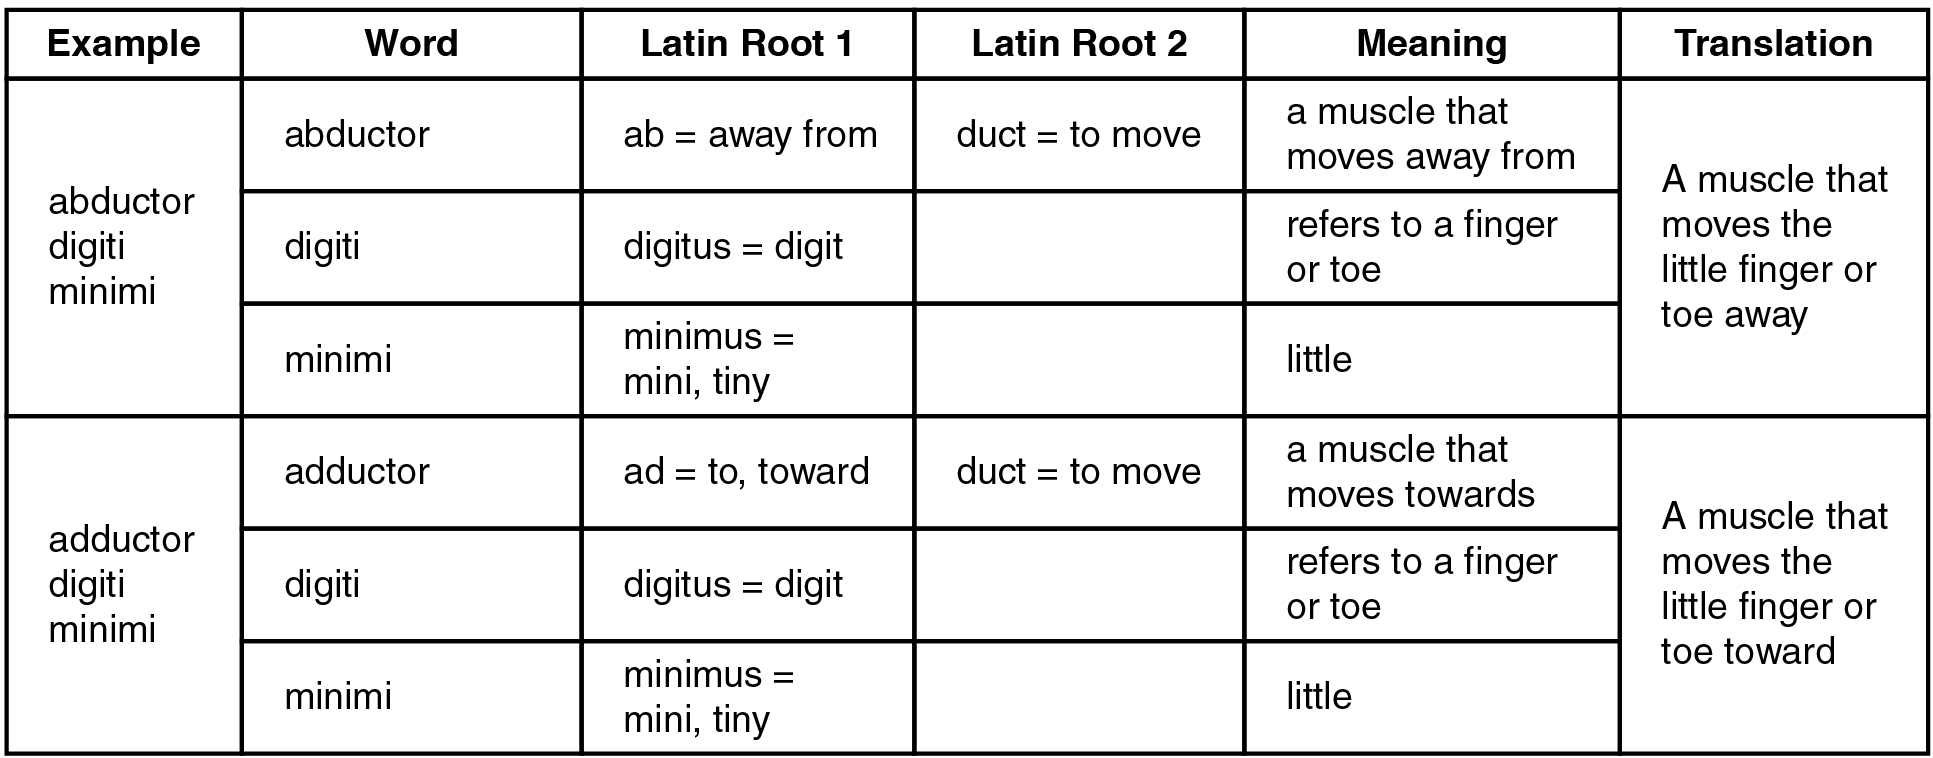 Worksheets Latin Roots Worksheet worksheet what is a root word example wosenly free naming skeletal muscles openstax cnx this table shows two